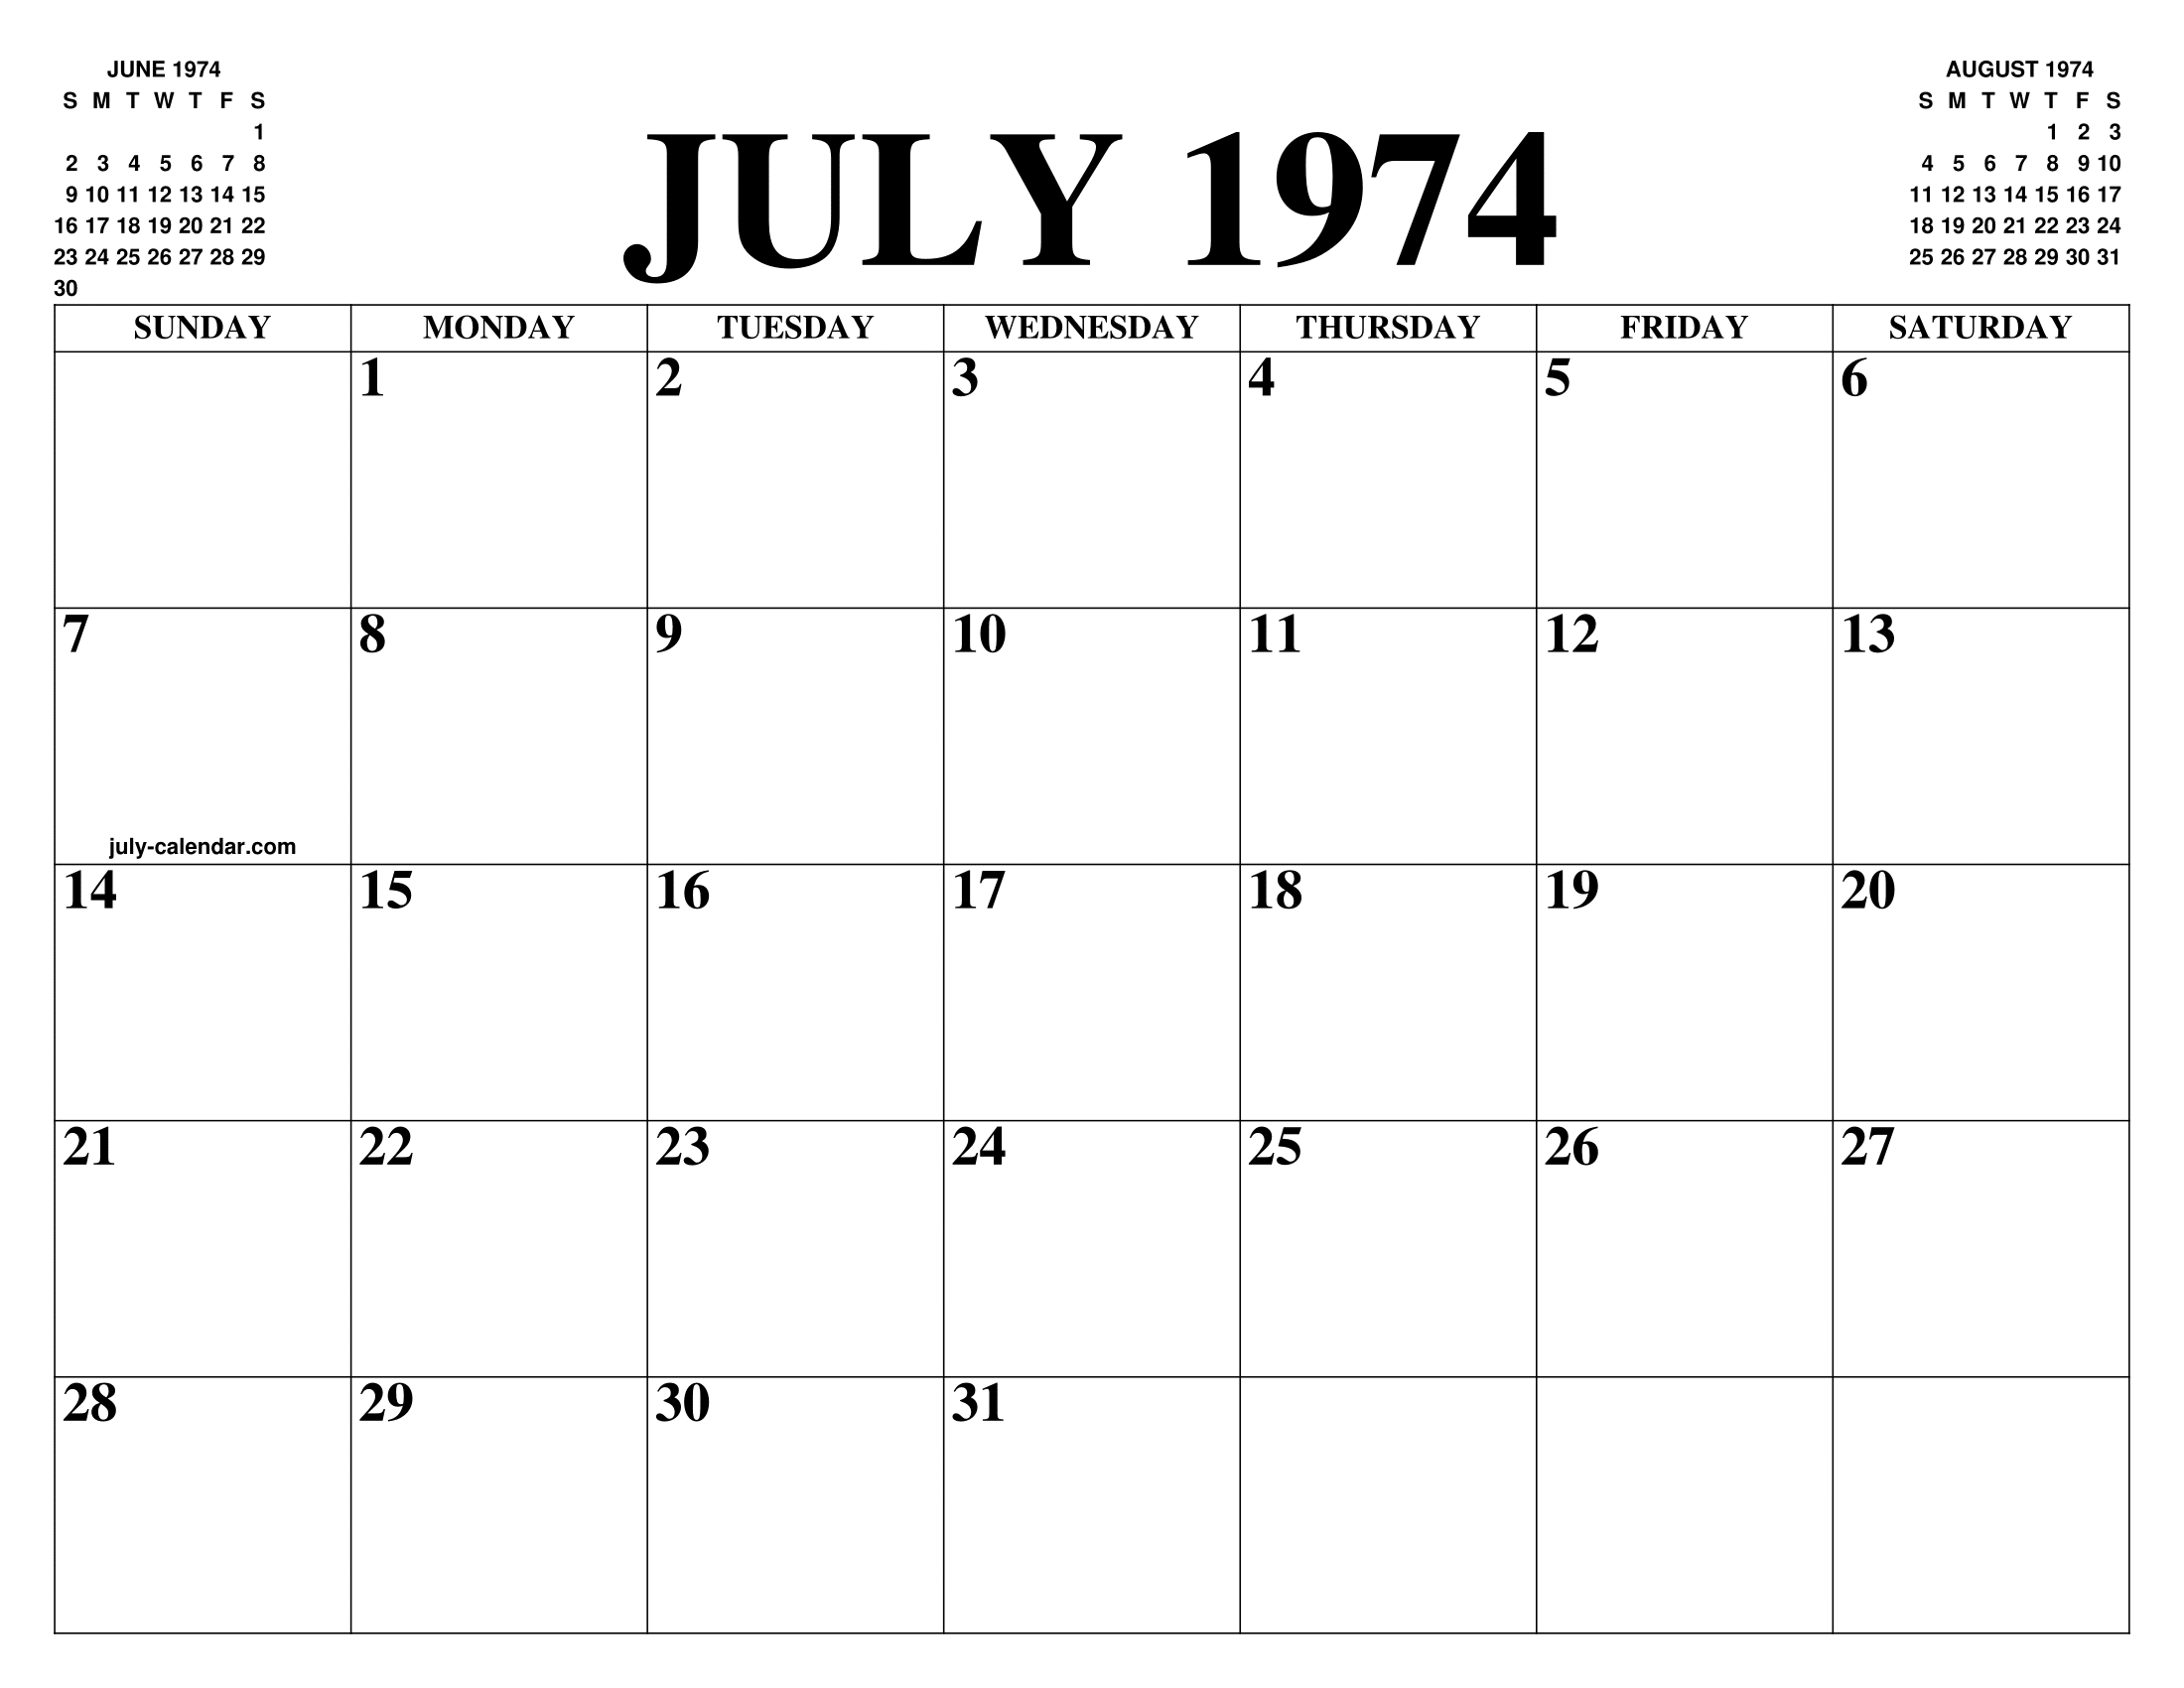 Calendario 1974.July 1974 Calendar Of The Month Free Printable July